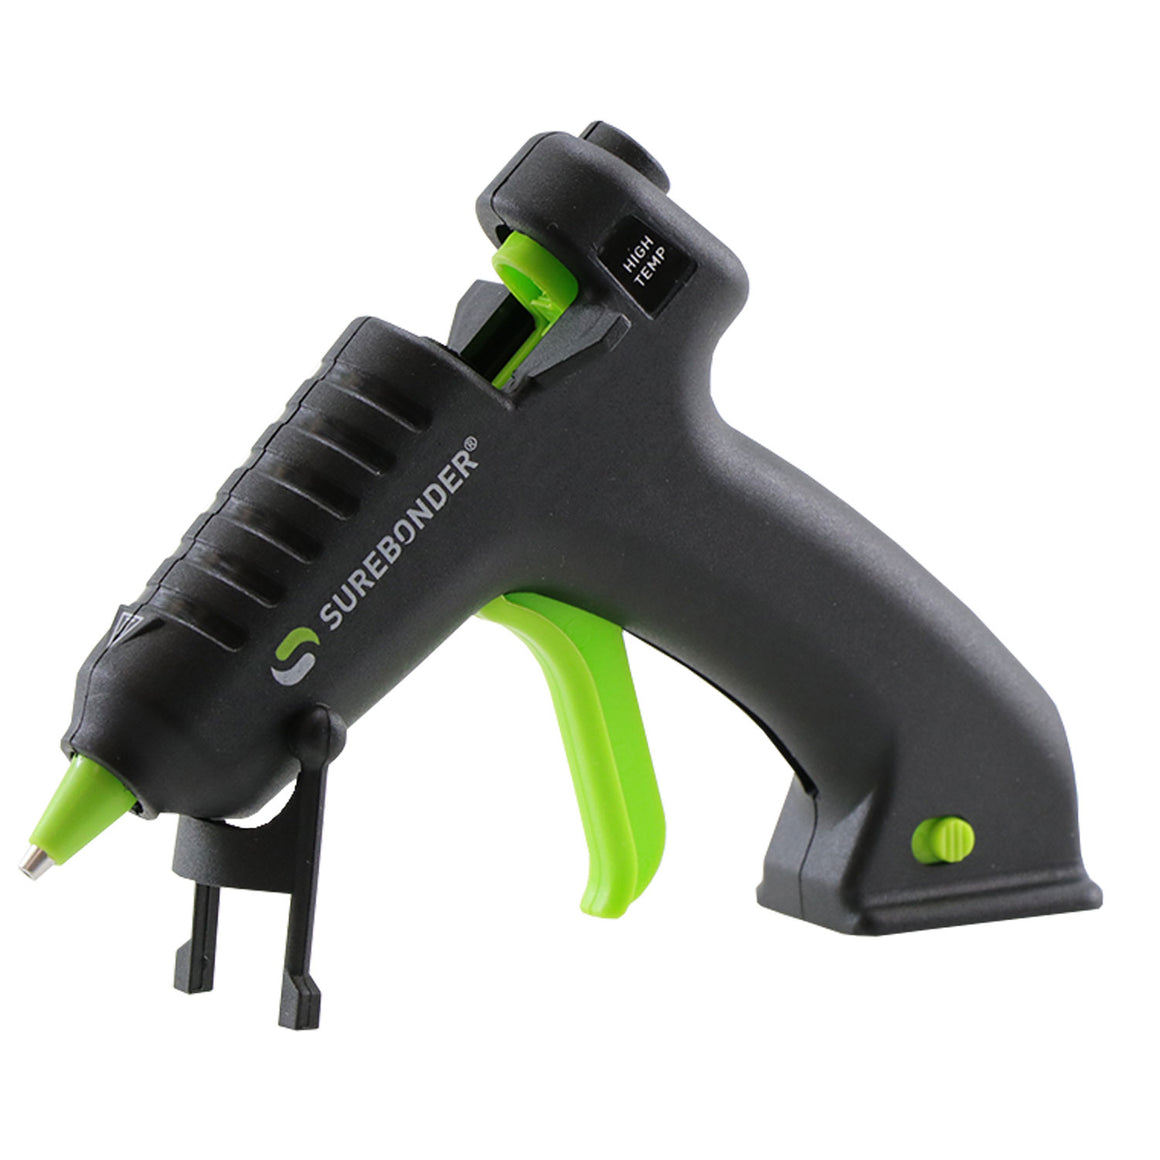 USB-195 Battery Powered Mini Size High Temperature Hot Glue Gun